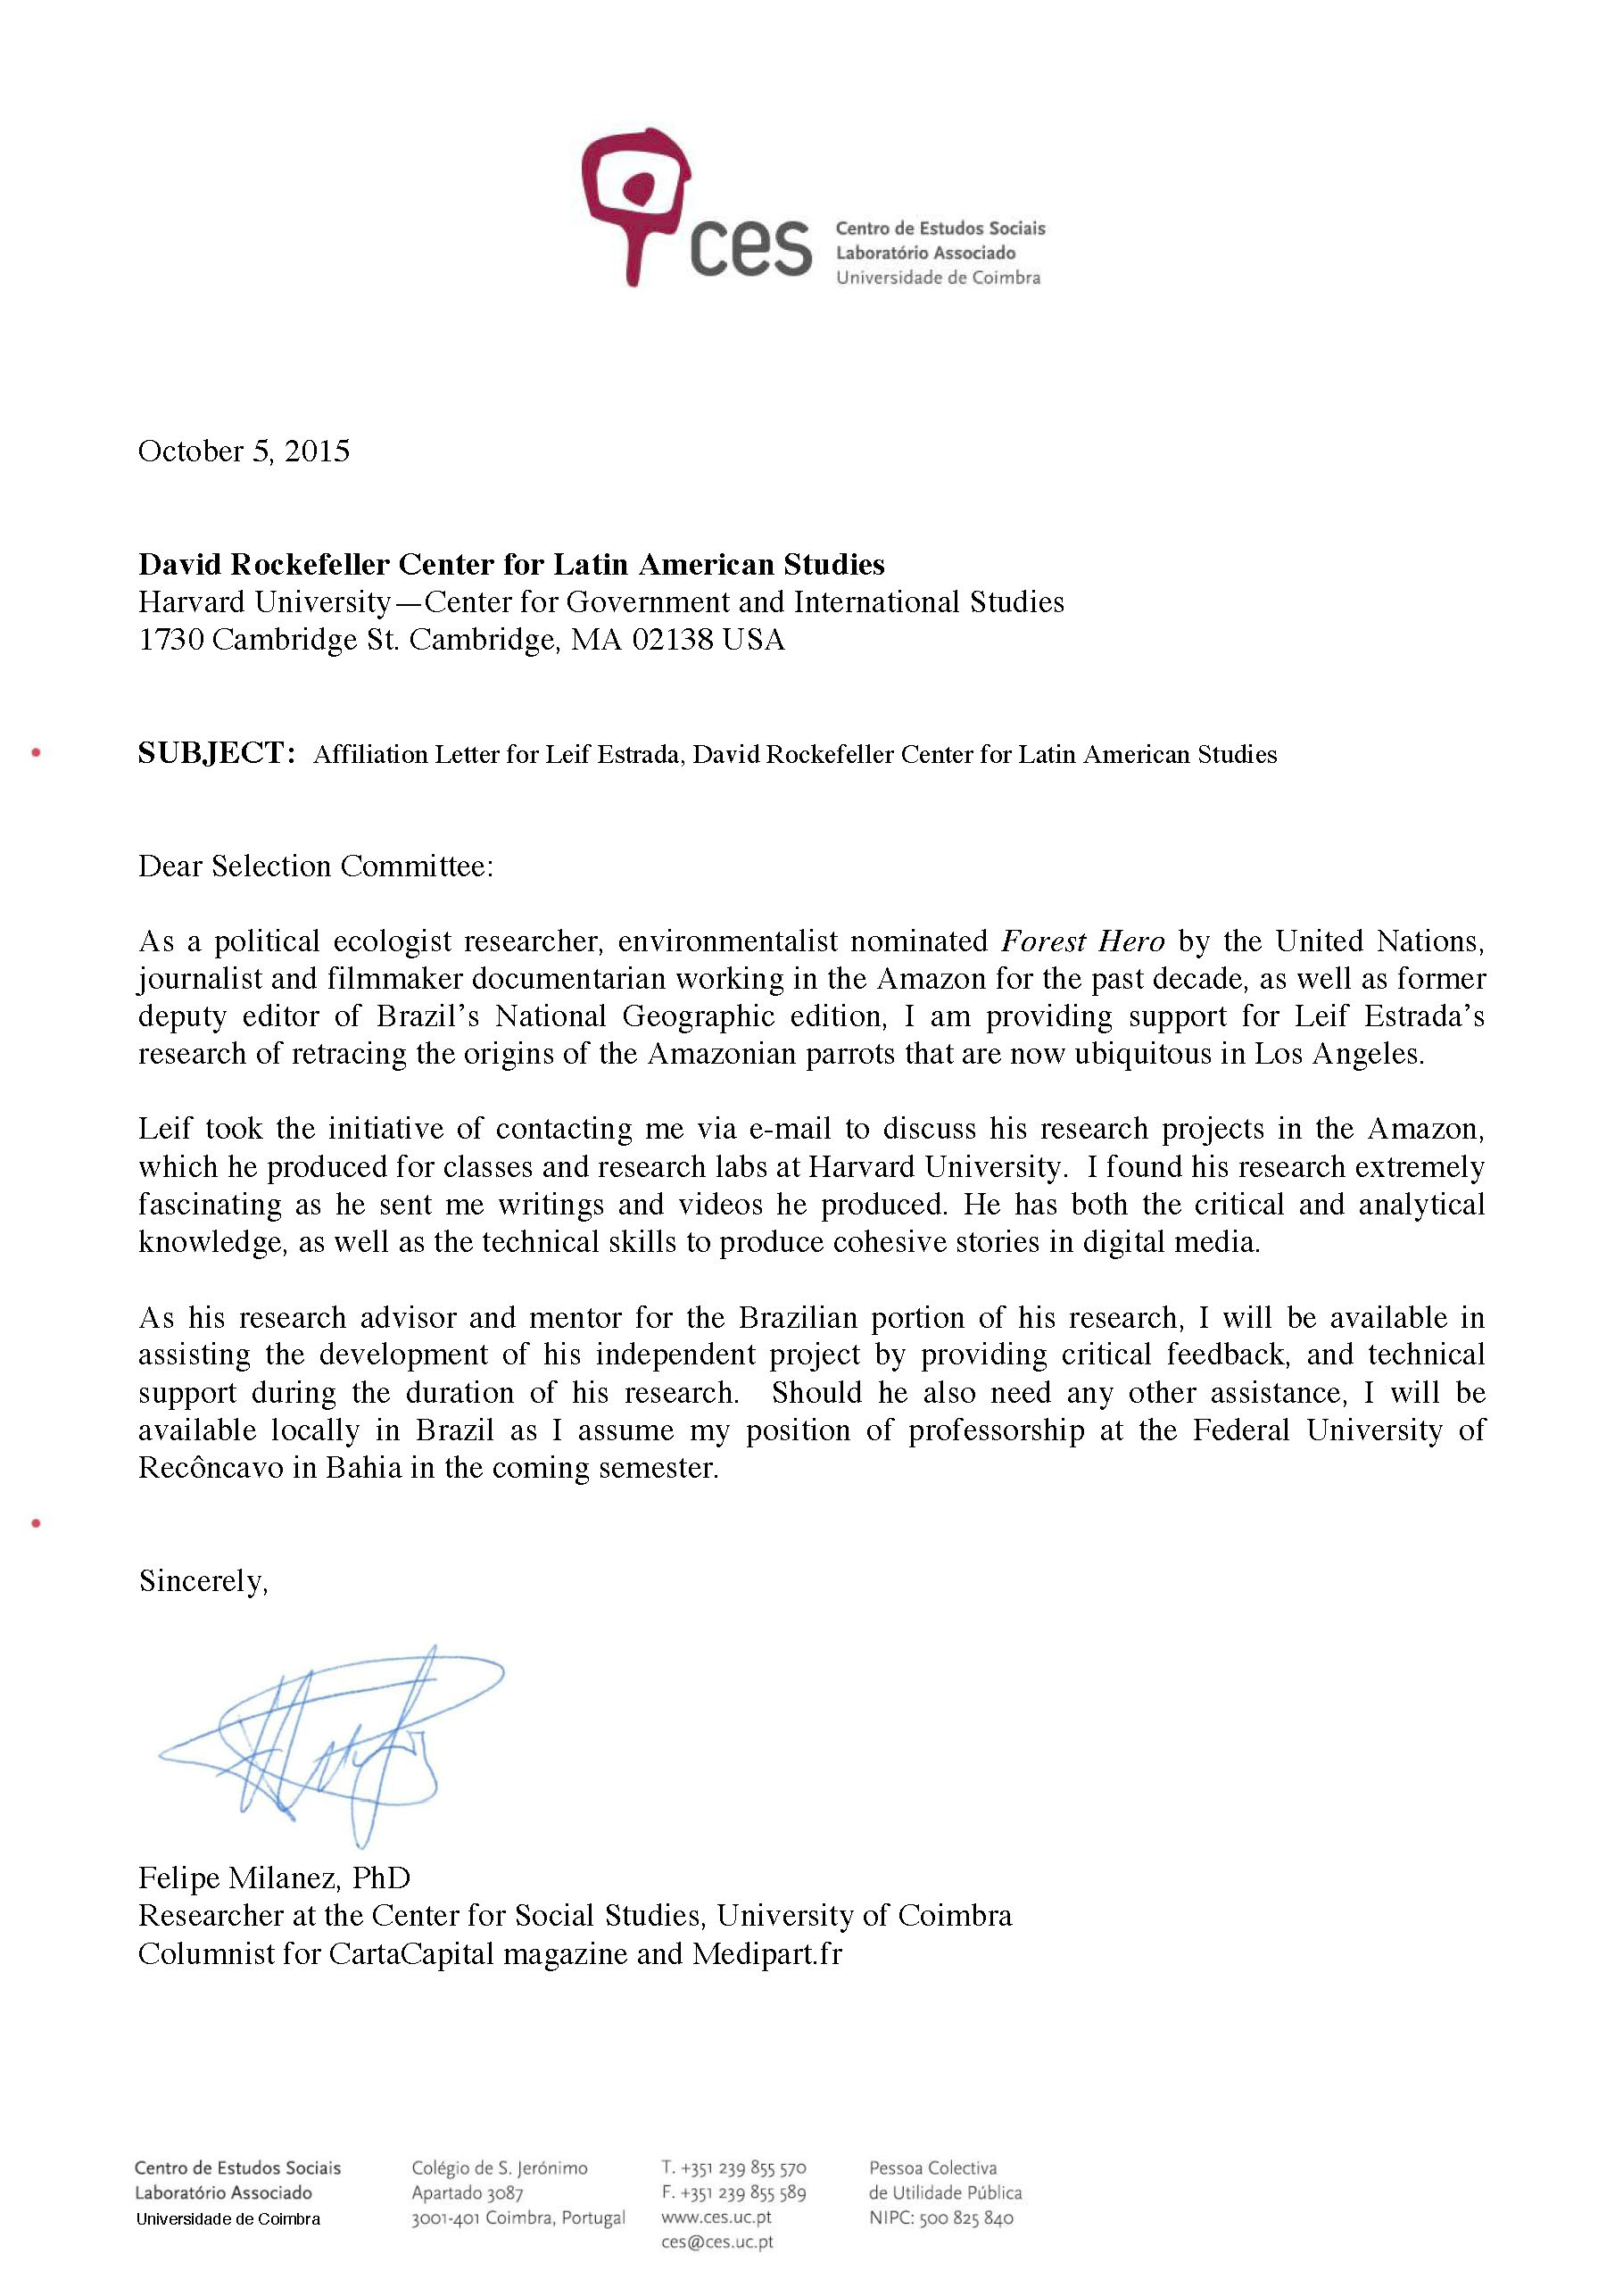 Estrada_2015DavidRockefeller_AffiliationLetters.compressed_Page_1.jpg